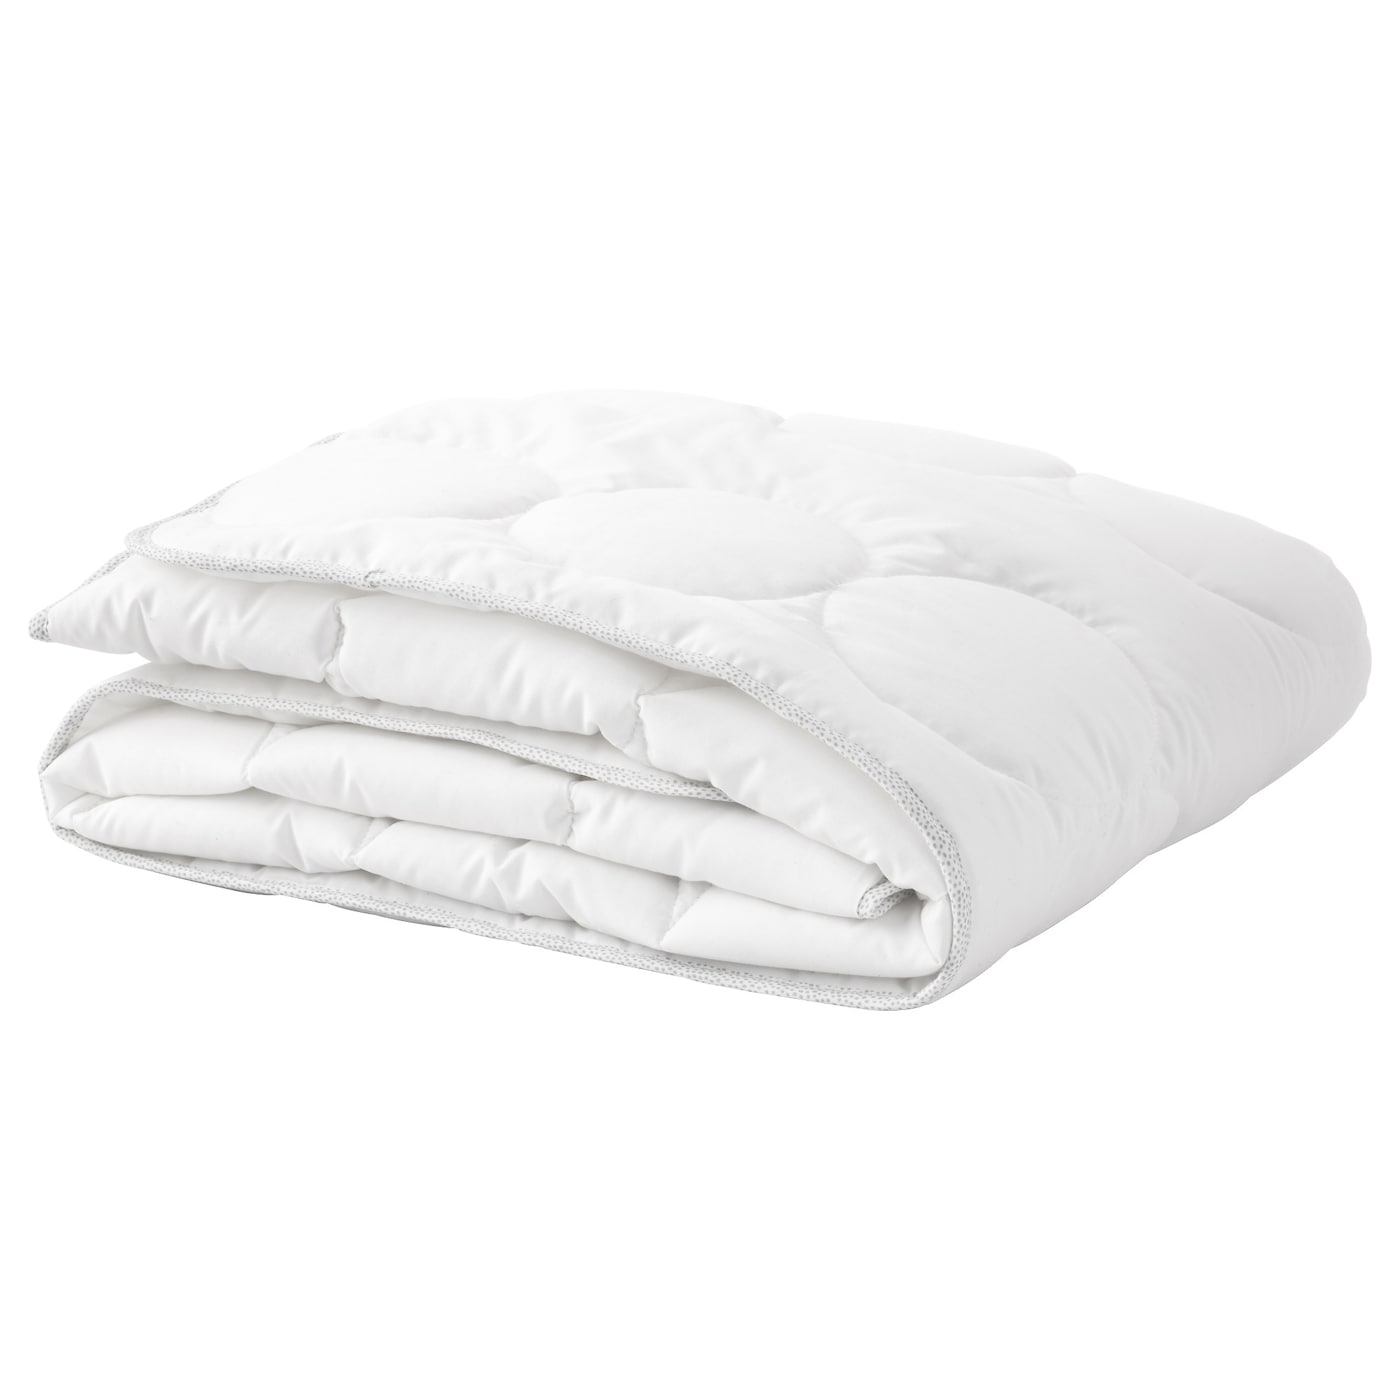 Ikea Cot Bed Quilt Cover And Pillowcase for cot BUSSIG